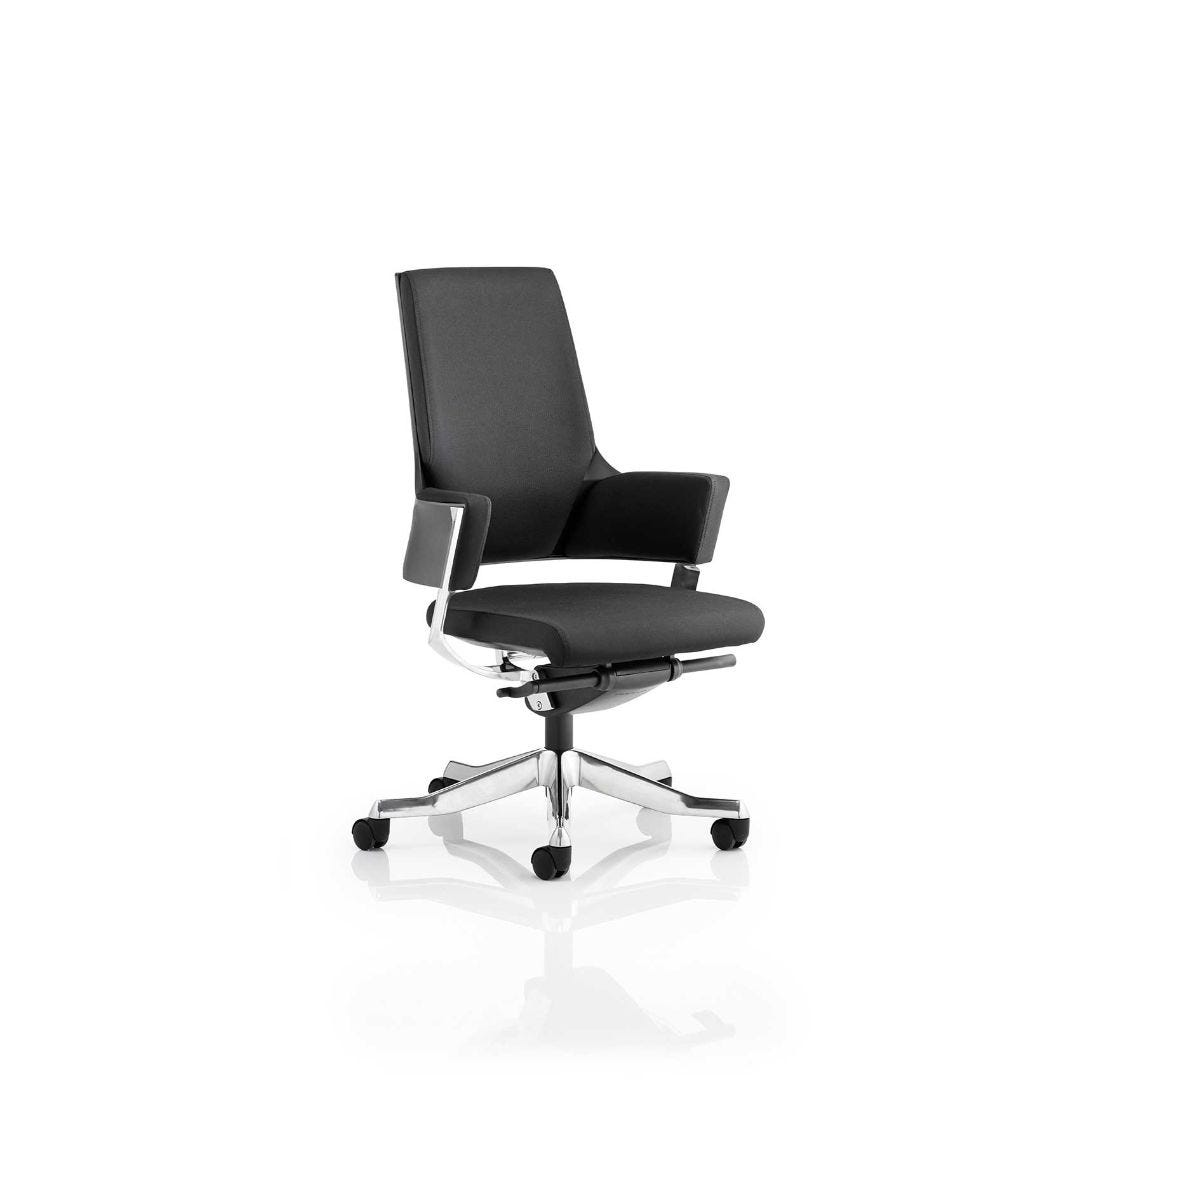 Enterprise Executive Office Chair, Black